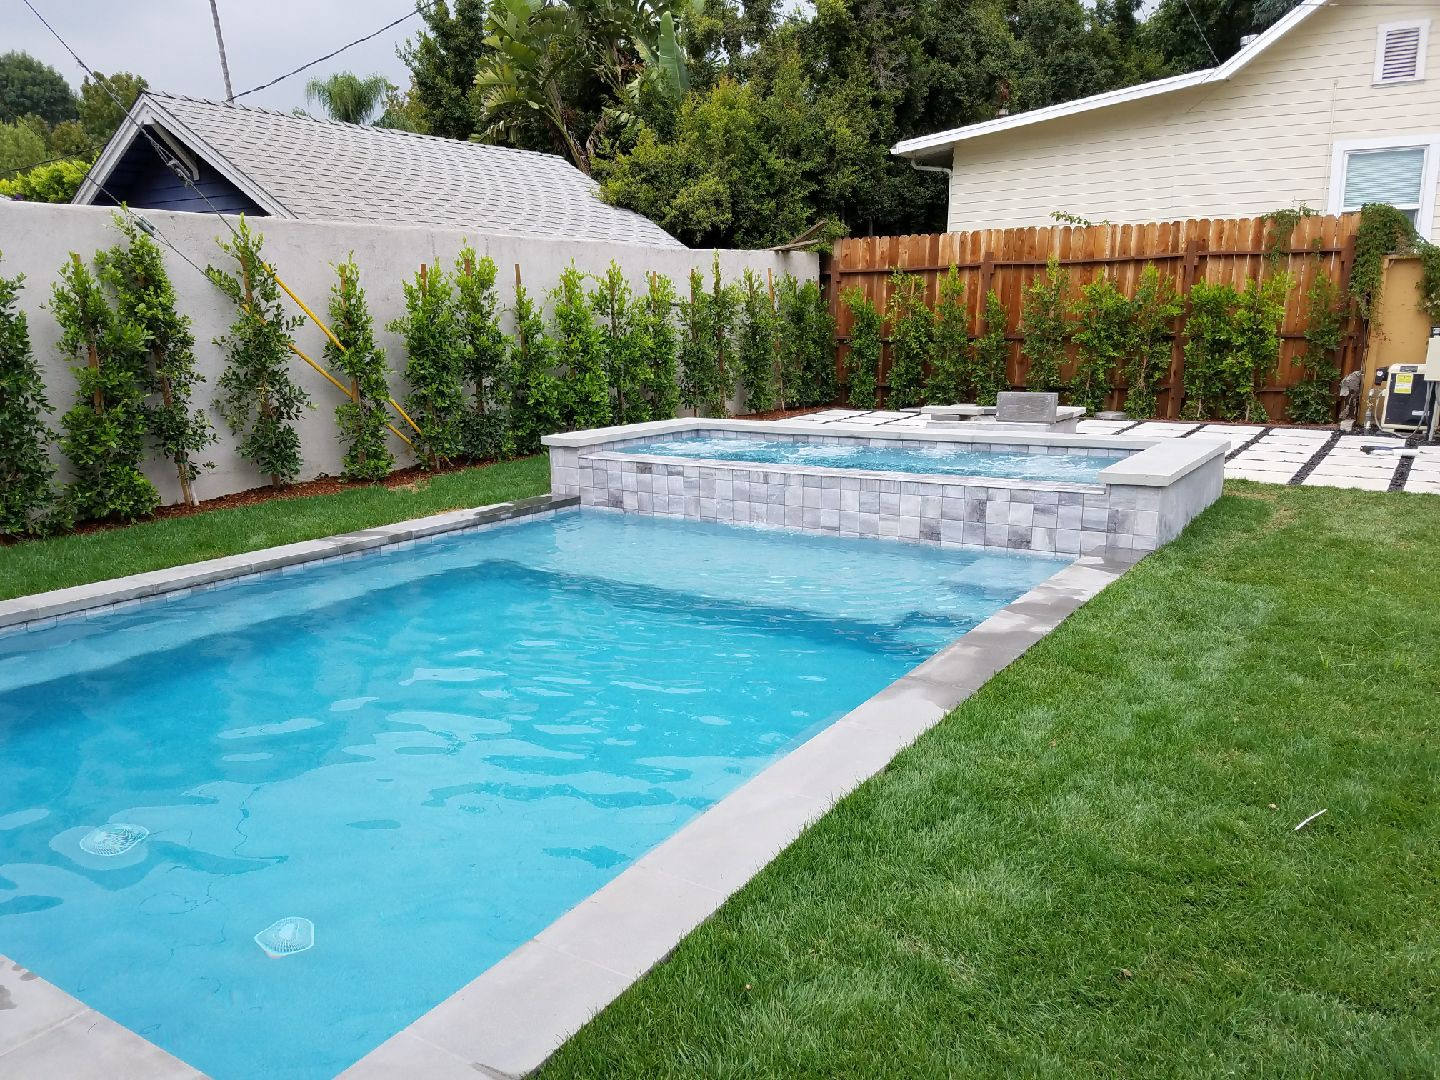 Do You Want To Have A Swimming Pool? Plan Early. Do Not Wait To Begin Your  Planning Process. Hire A Pool Construction Company And Lay Emphasis On The  ...